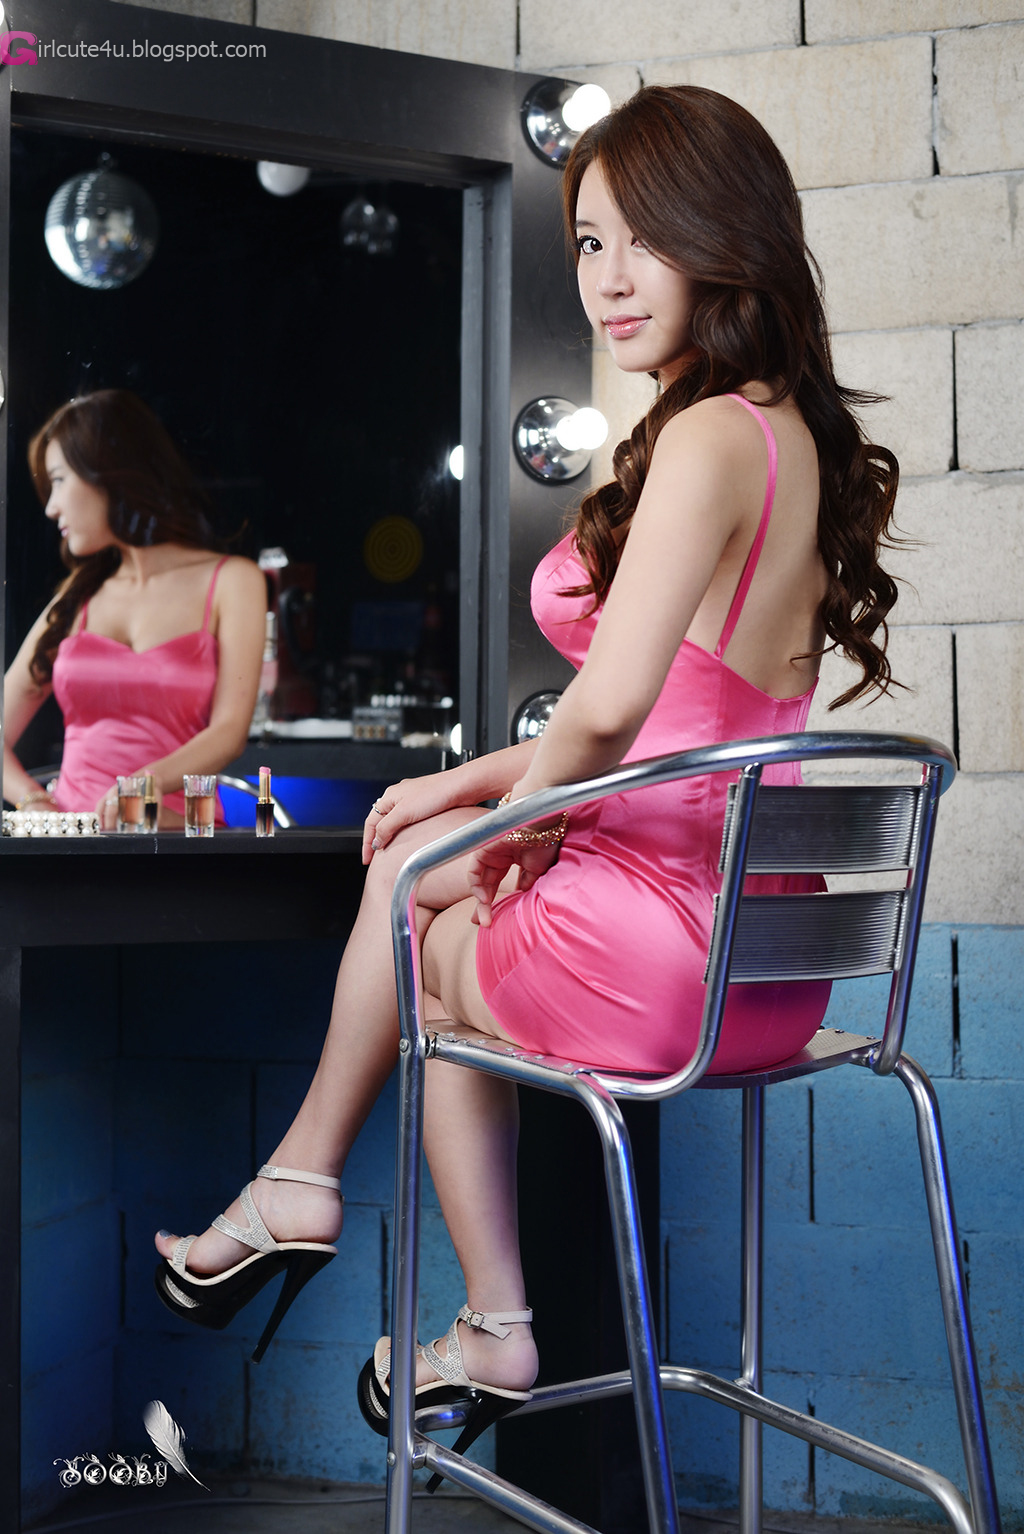 Yoon Joo Ha in Pink - very cute asian girl - buntink.blogspot.com